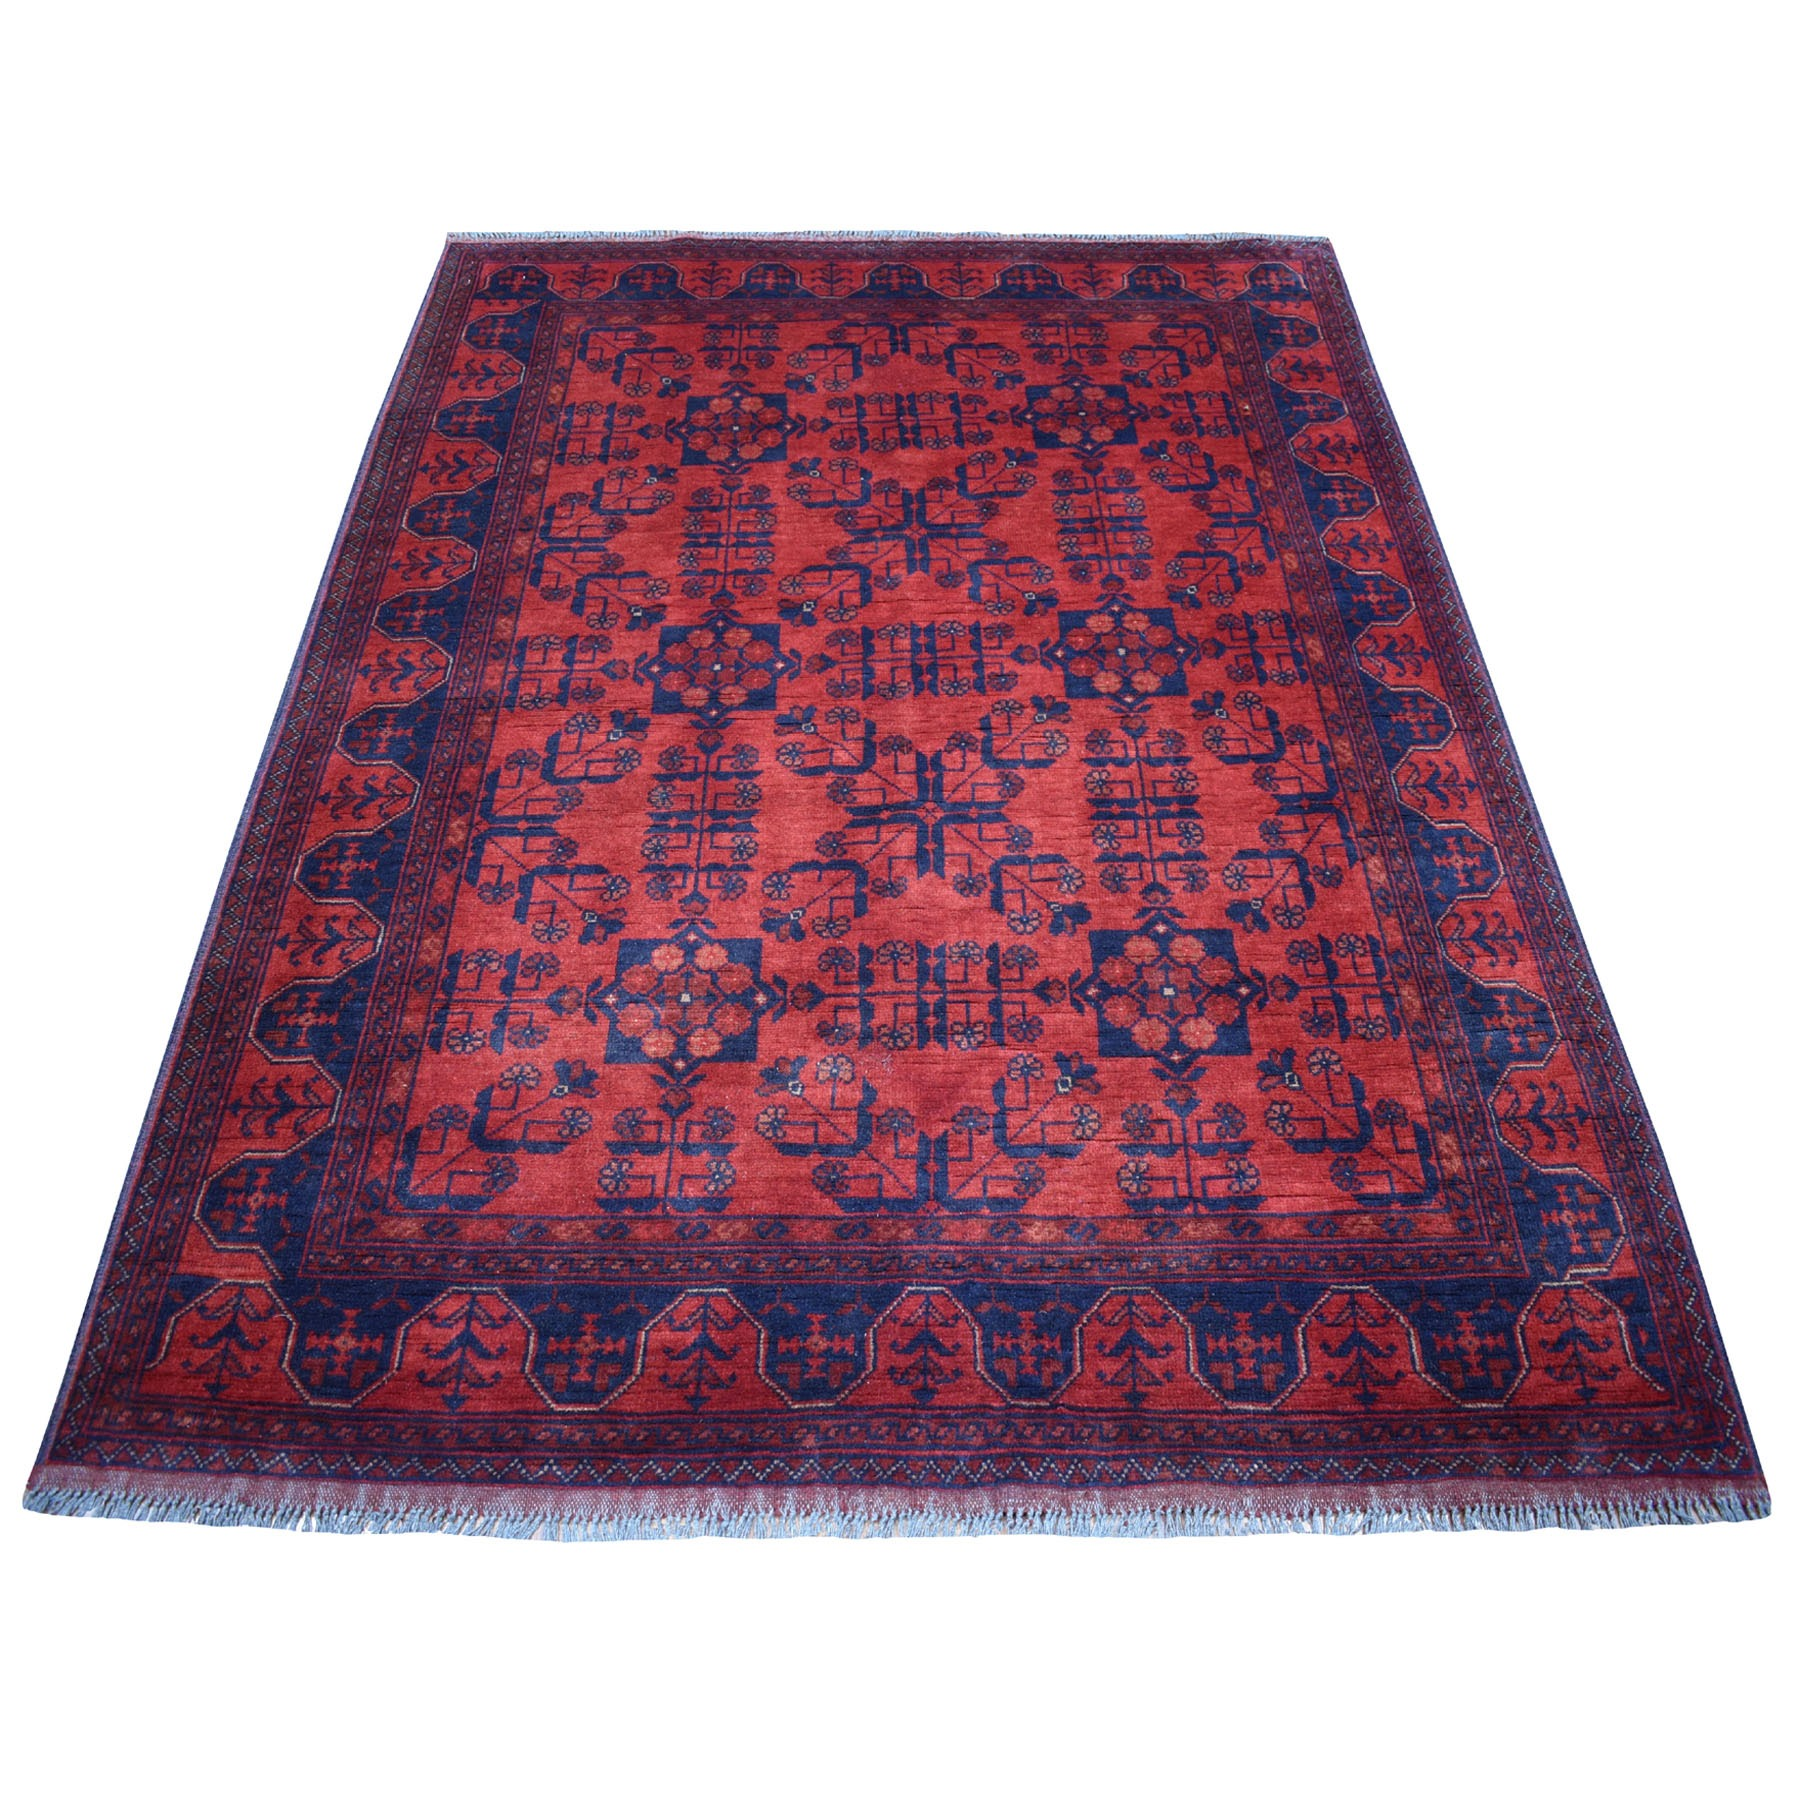 """4'10""""x6'4"""" Deep and Saturated Red Geometric Afghan Andkhoy Pure Wool Hand Knotted Oriental Rug 53561"""